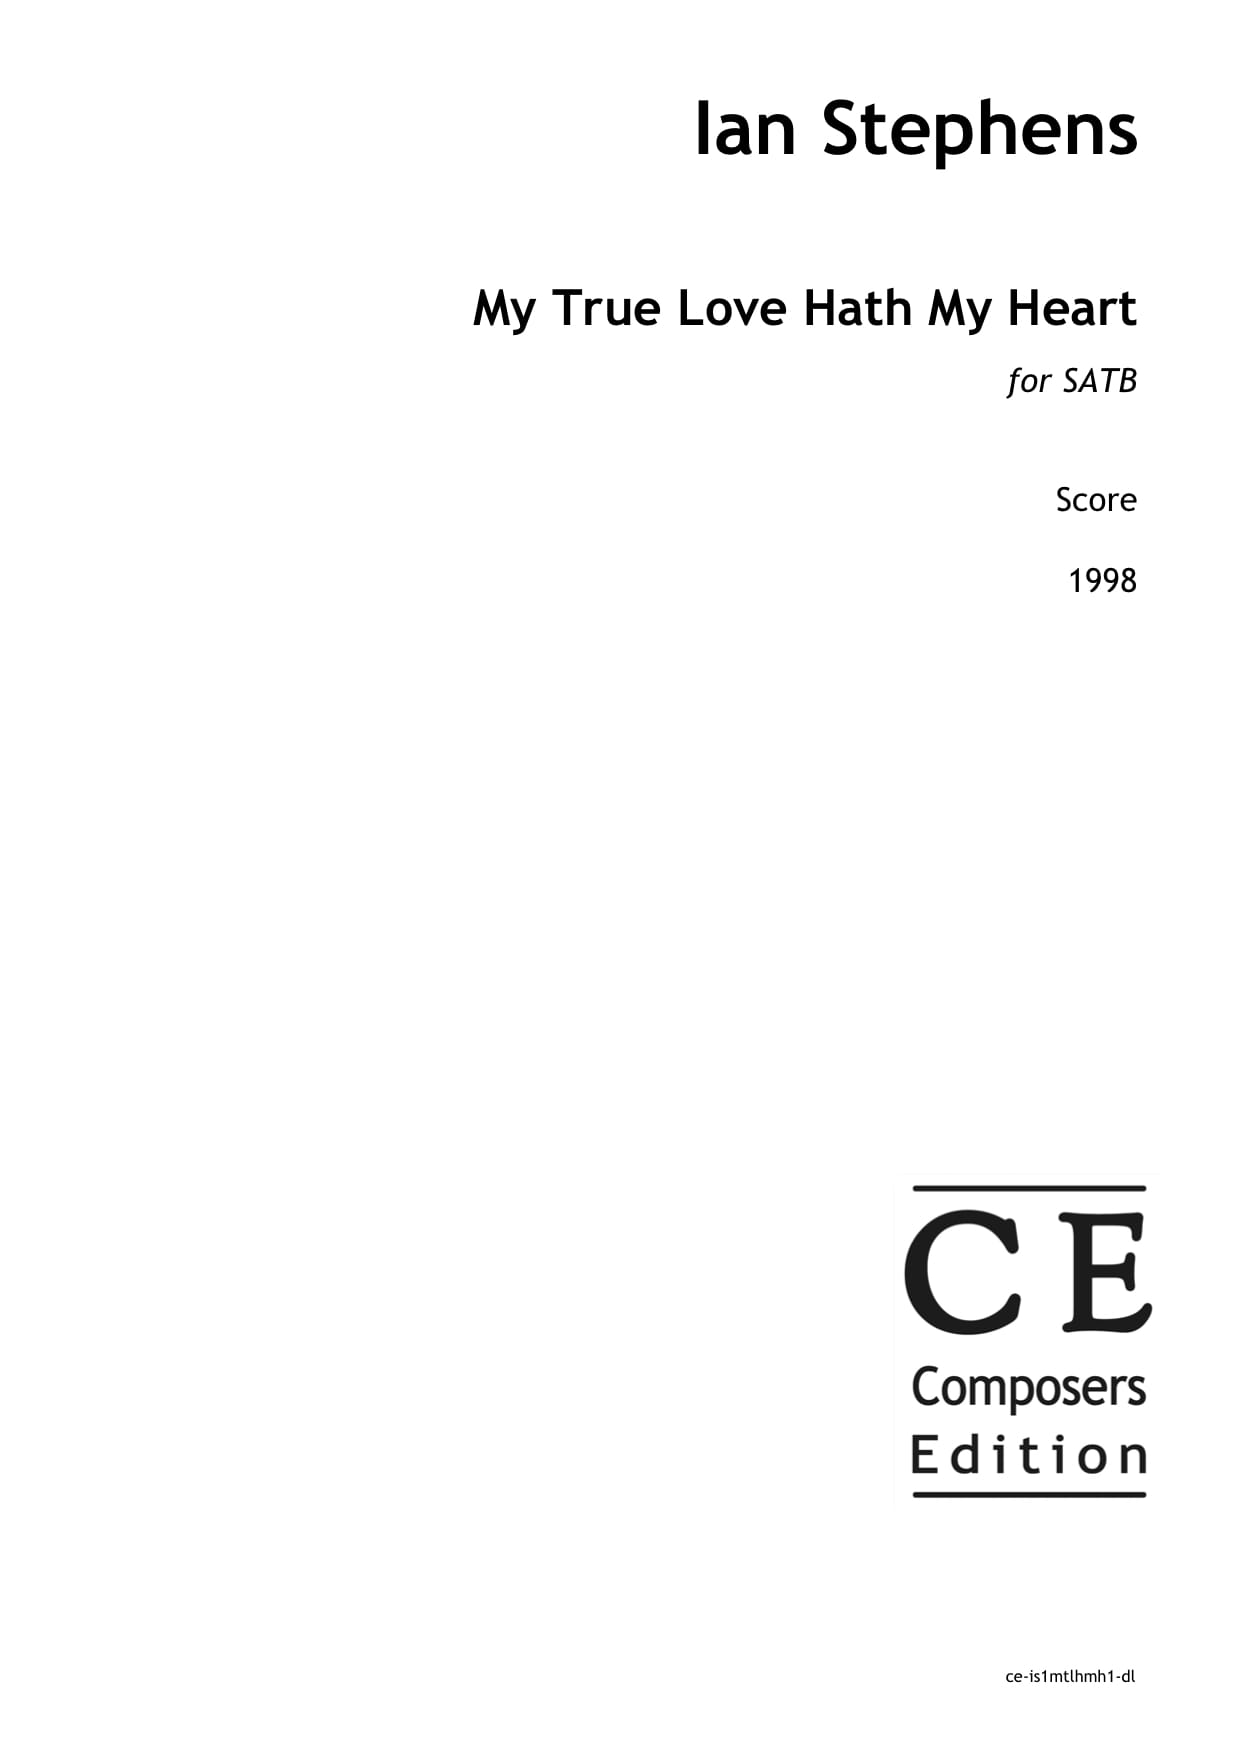 Ian Stephens: My True Love Hath My Heart for SATB choir